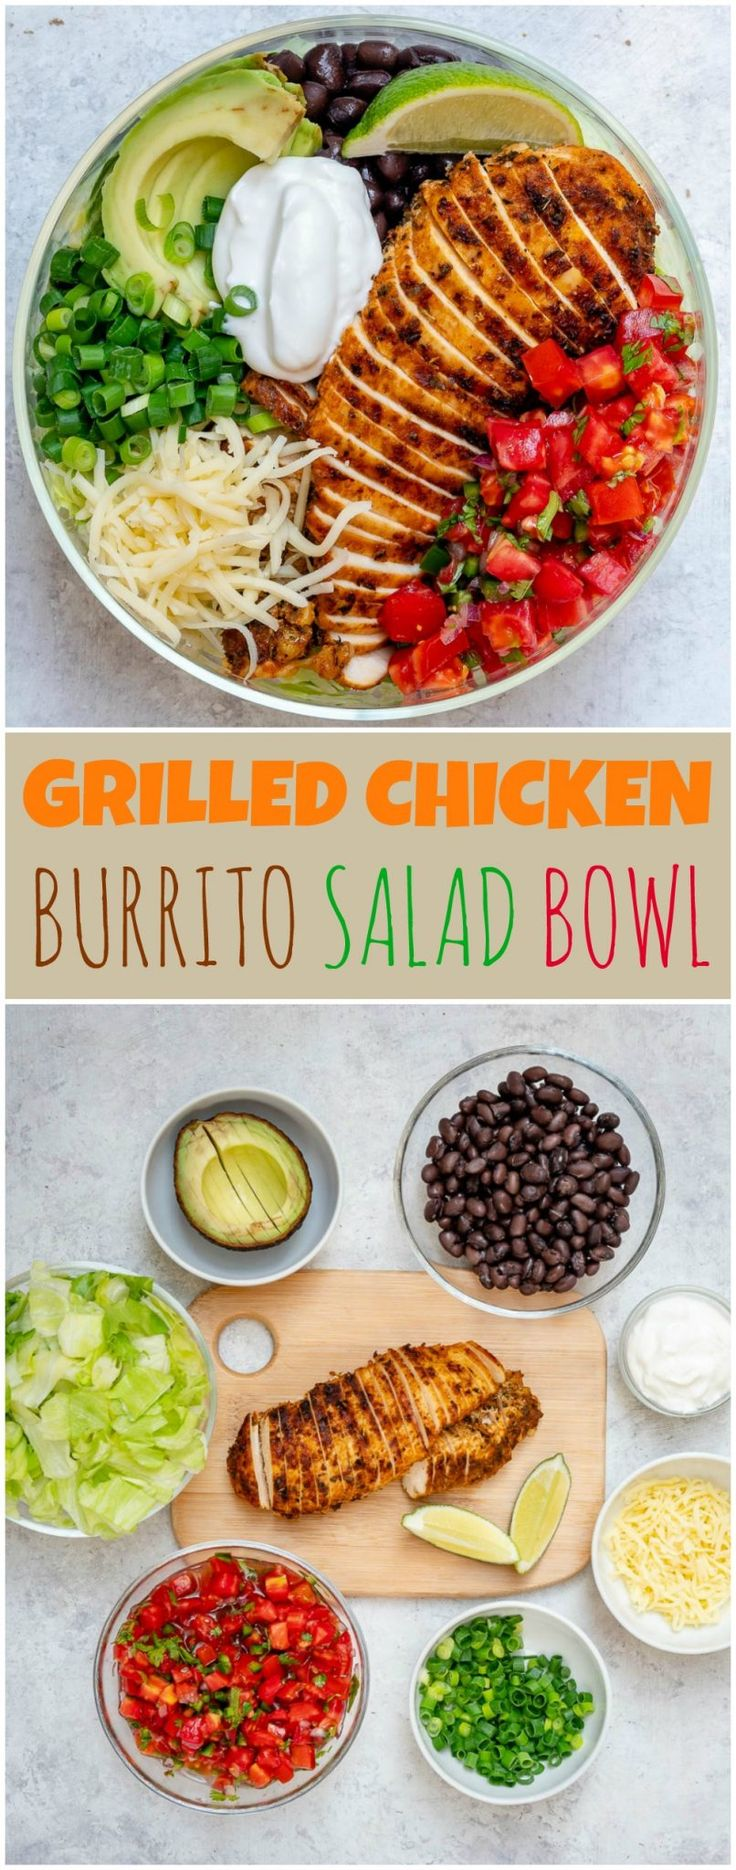 Grilled Chicken Meal Prep Bowls 4 Creative Ways for Clean Eating